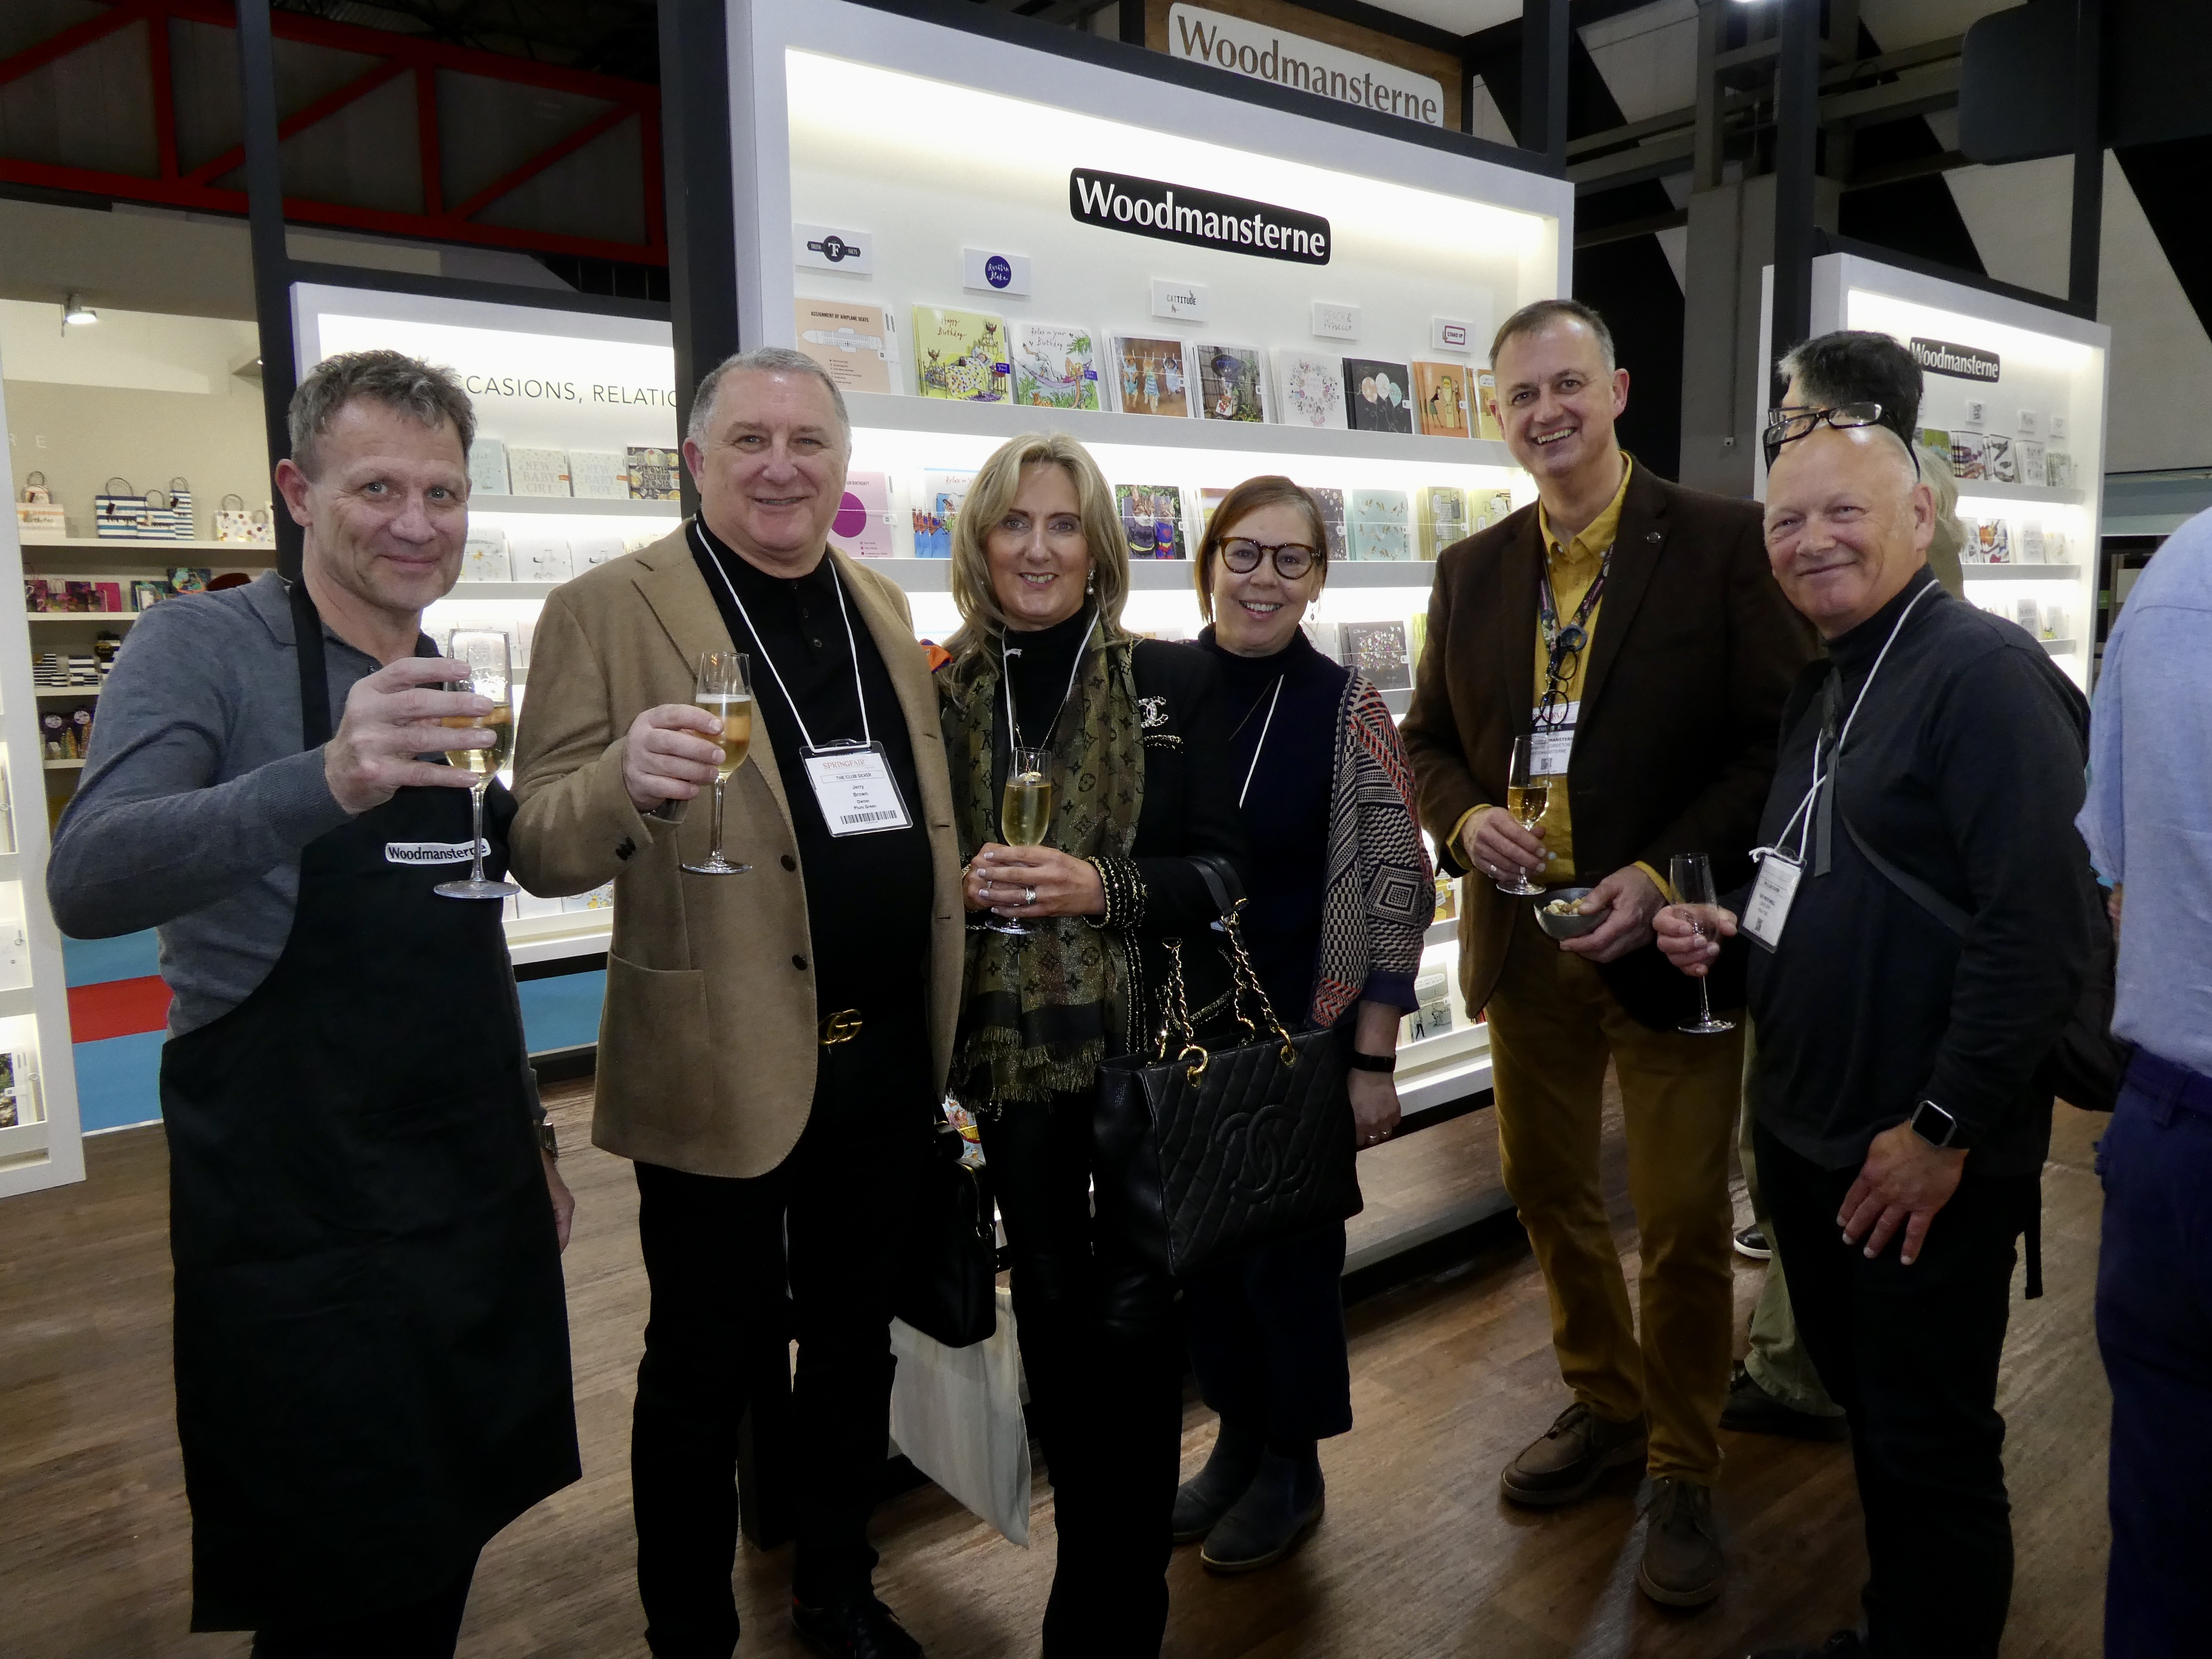 Above: (Left-right) Andy Paterson (Woodmansterne); Jerry and Debbie Brown (First Class Greetings), Sarah Green (Wave/High Tide), Paul Woodmansterne (Woodmansterne) and Guy Mitchelle (Wave/High Tide) on Woodmansterne's stand at this year's Spring Fair.